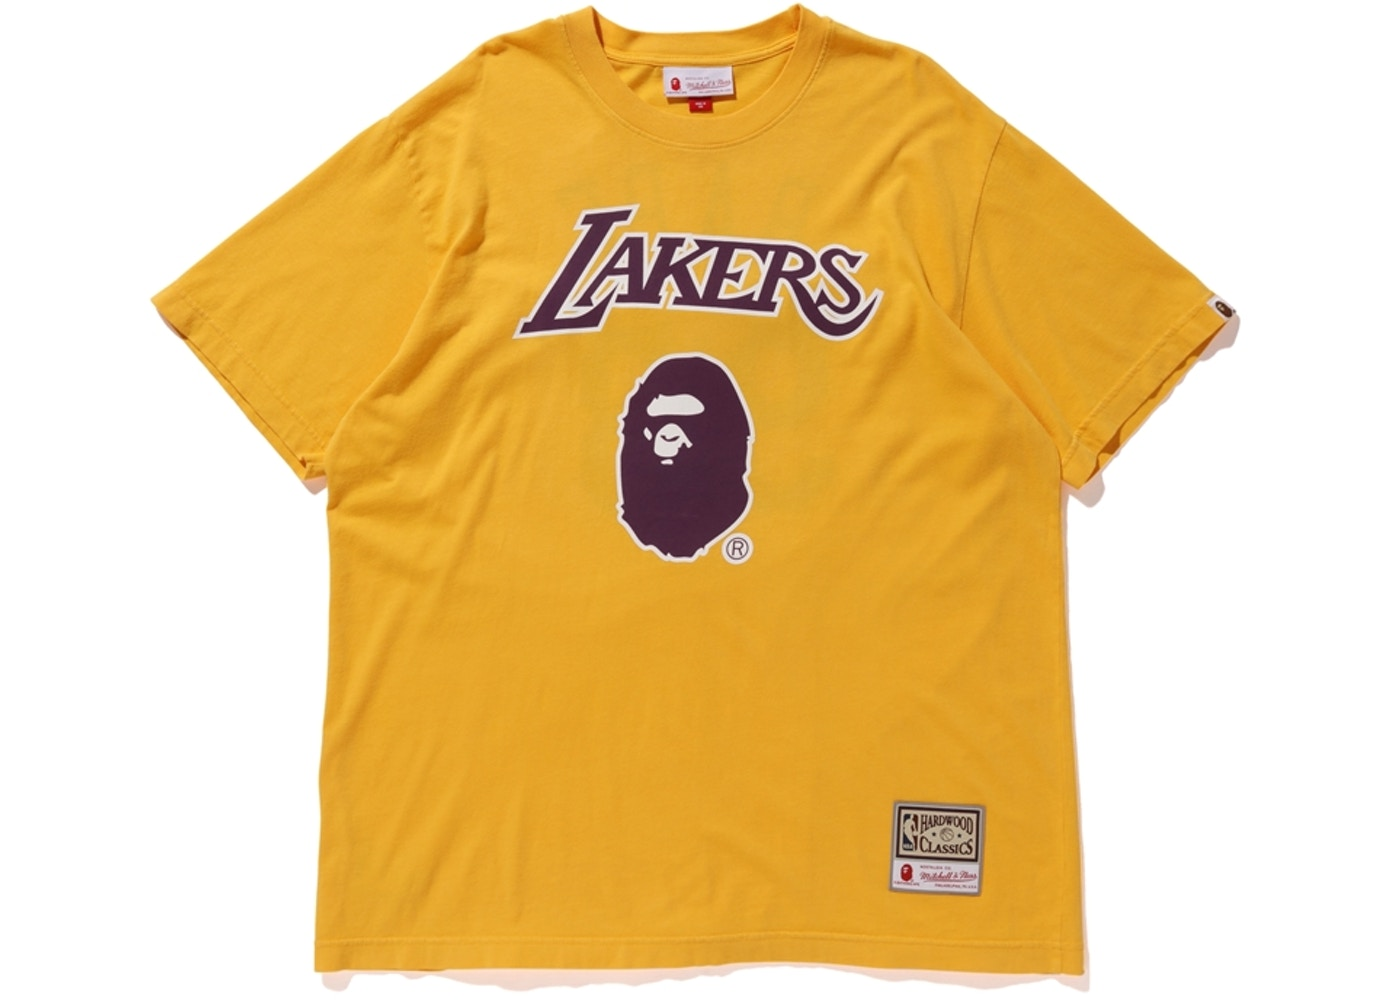 6a19cf32e80 BAPE x Mitchell & Ness Lakers Tee Yellow